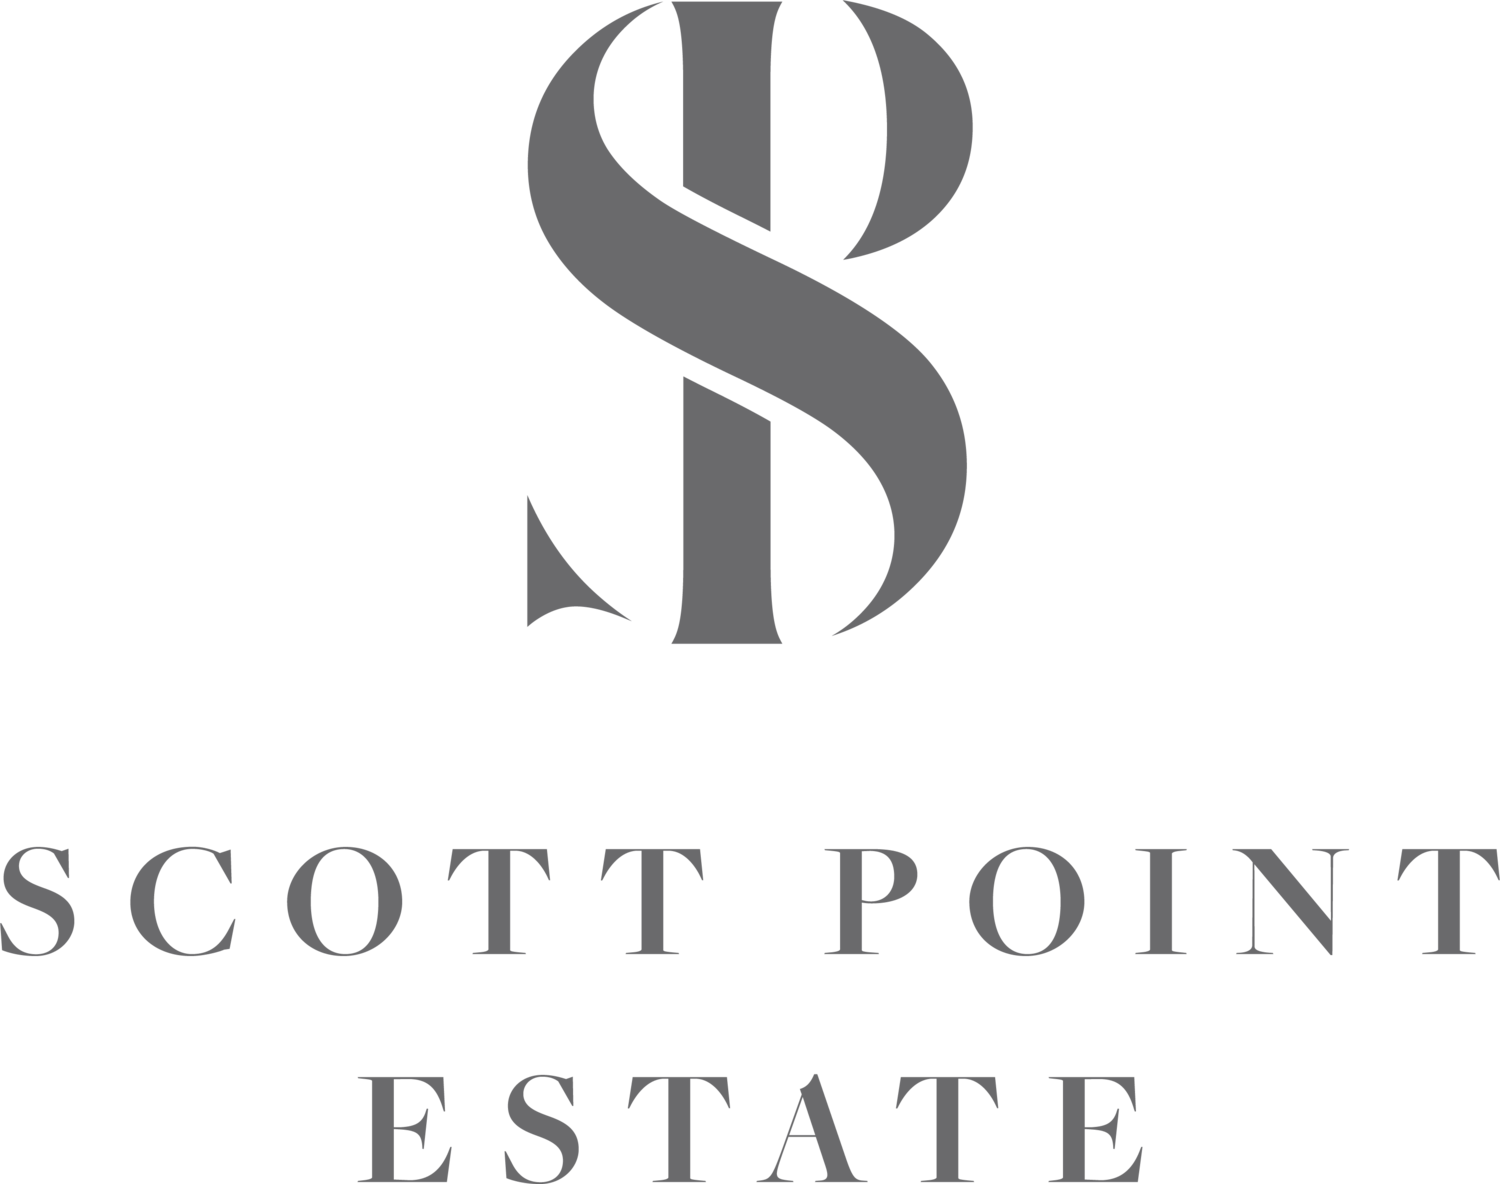 Scott Point Estate